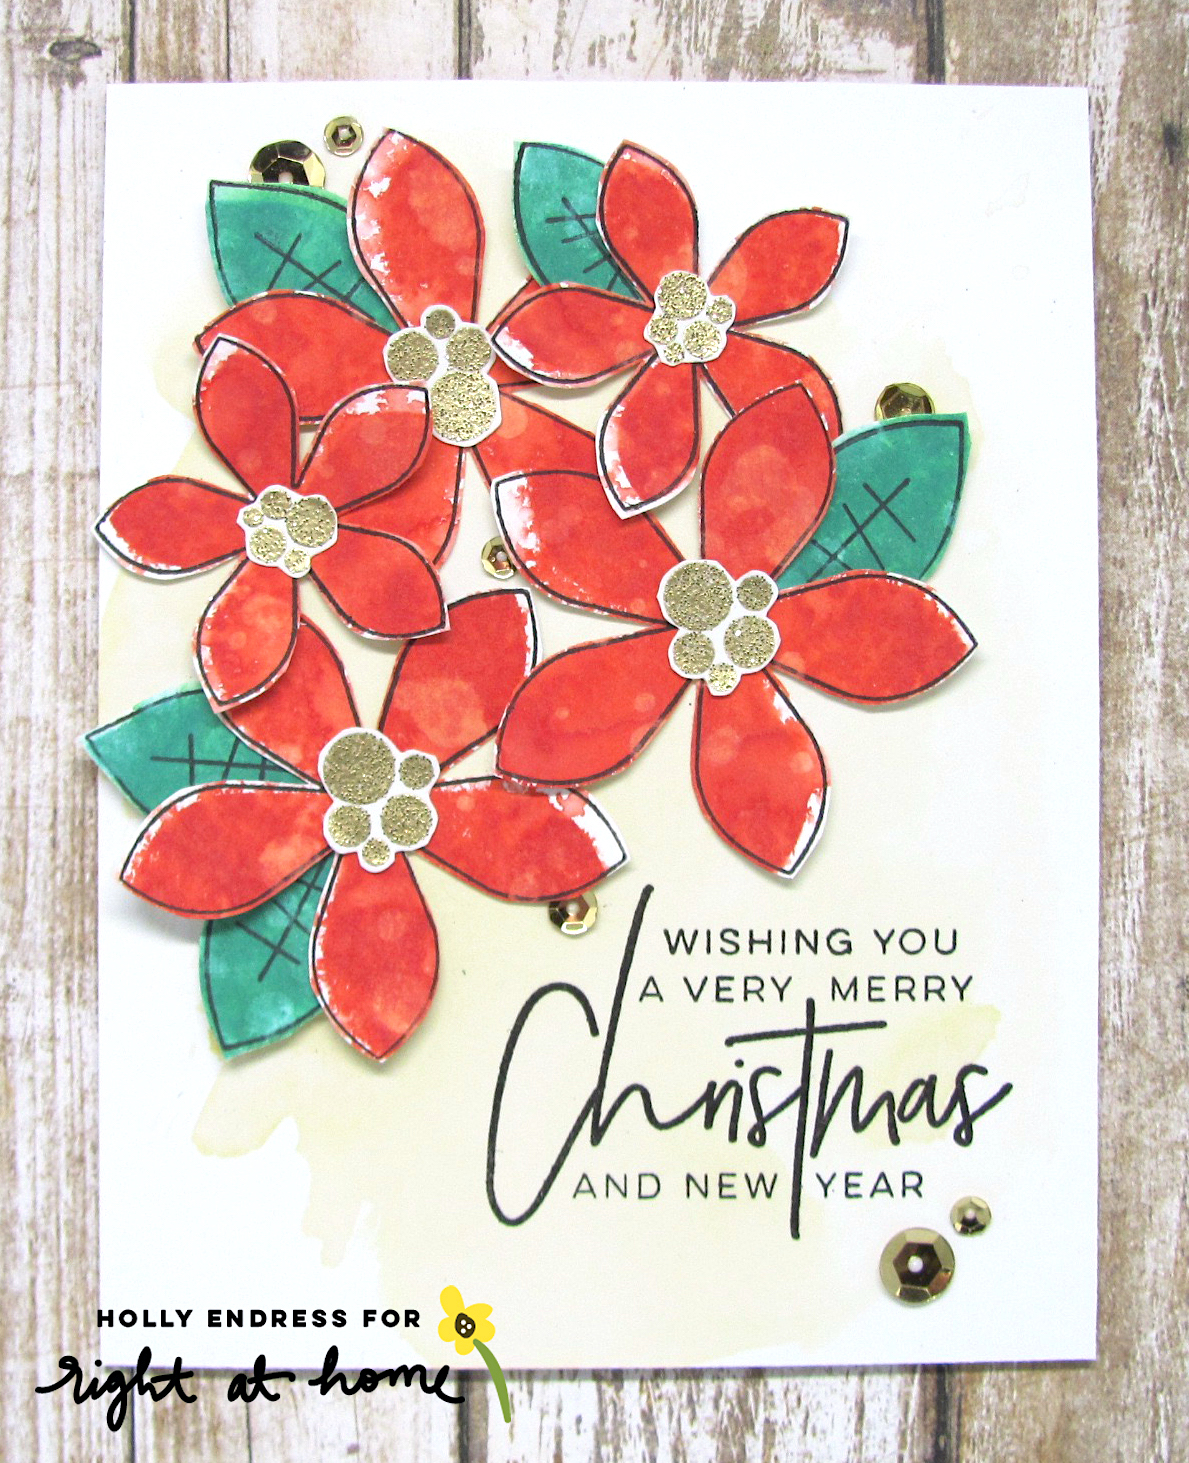 Merry Christmas Poinsettia Card Using Distress Oxide Inks by Holly // rightathomeshop.com/blog